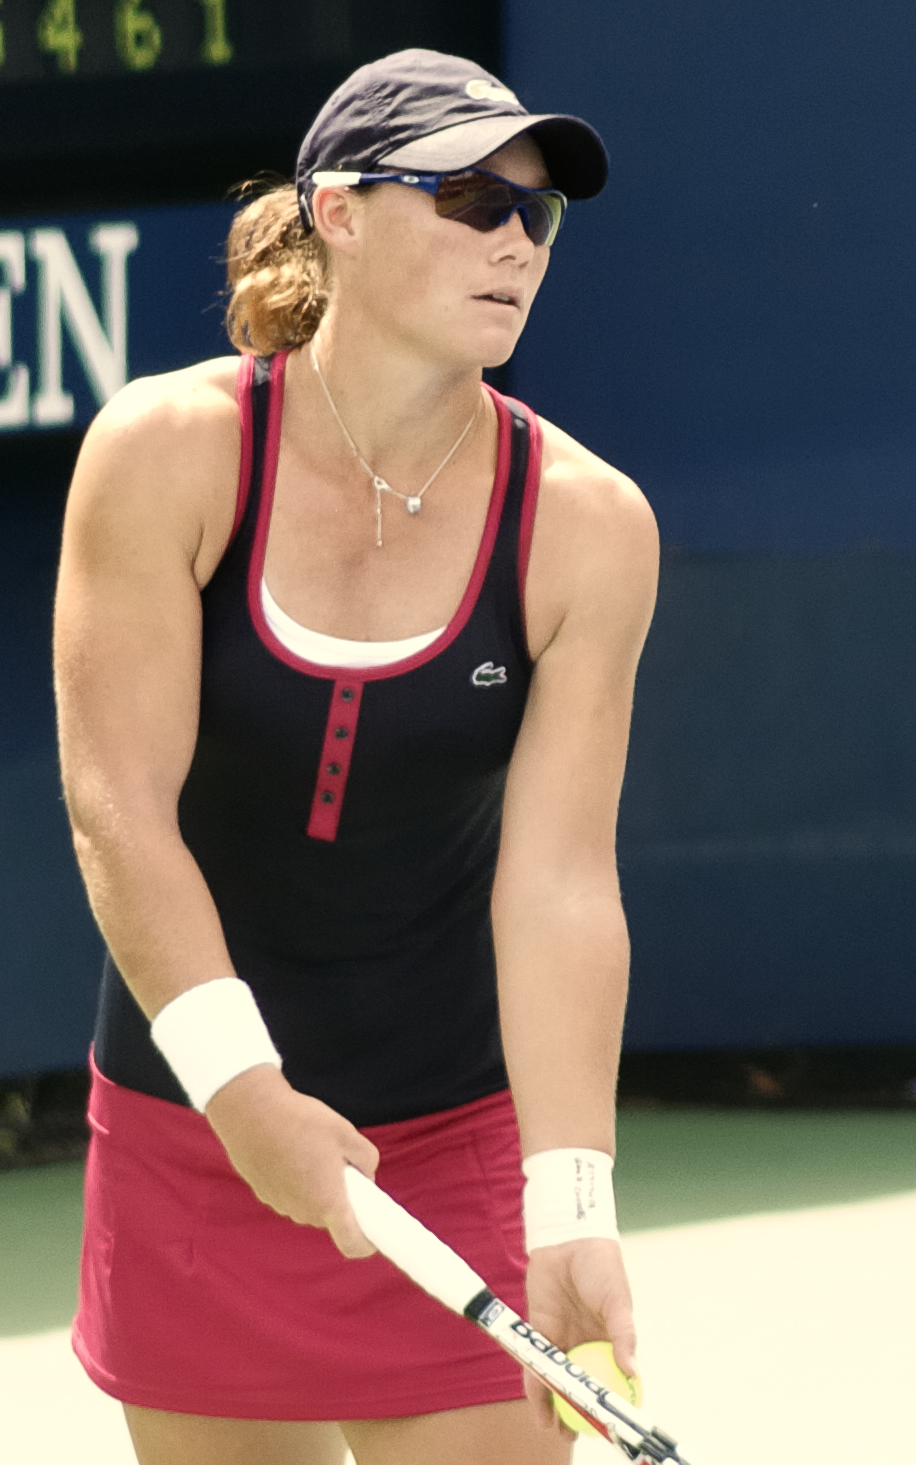 Samantha-Stosur-2009-US-open